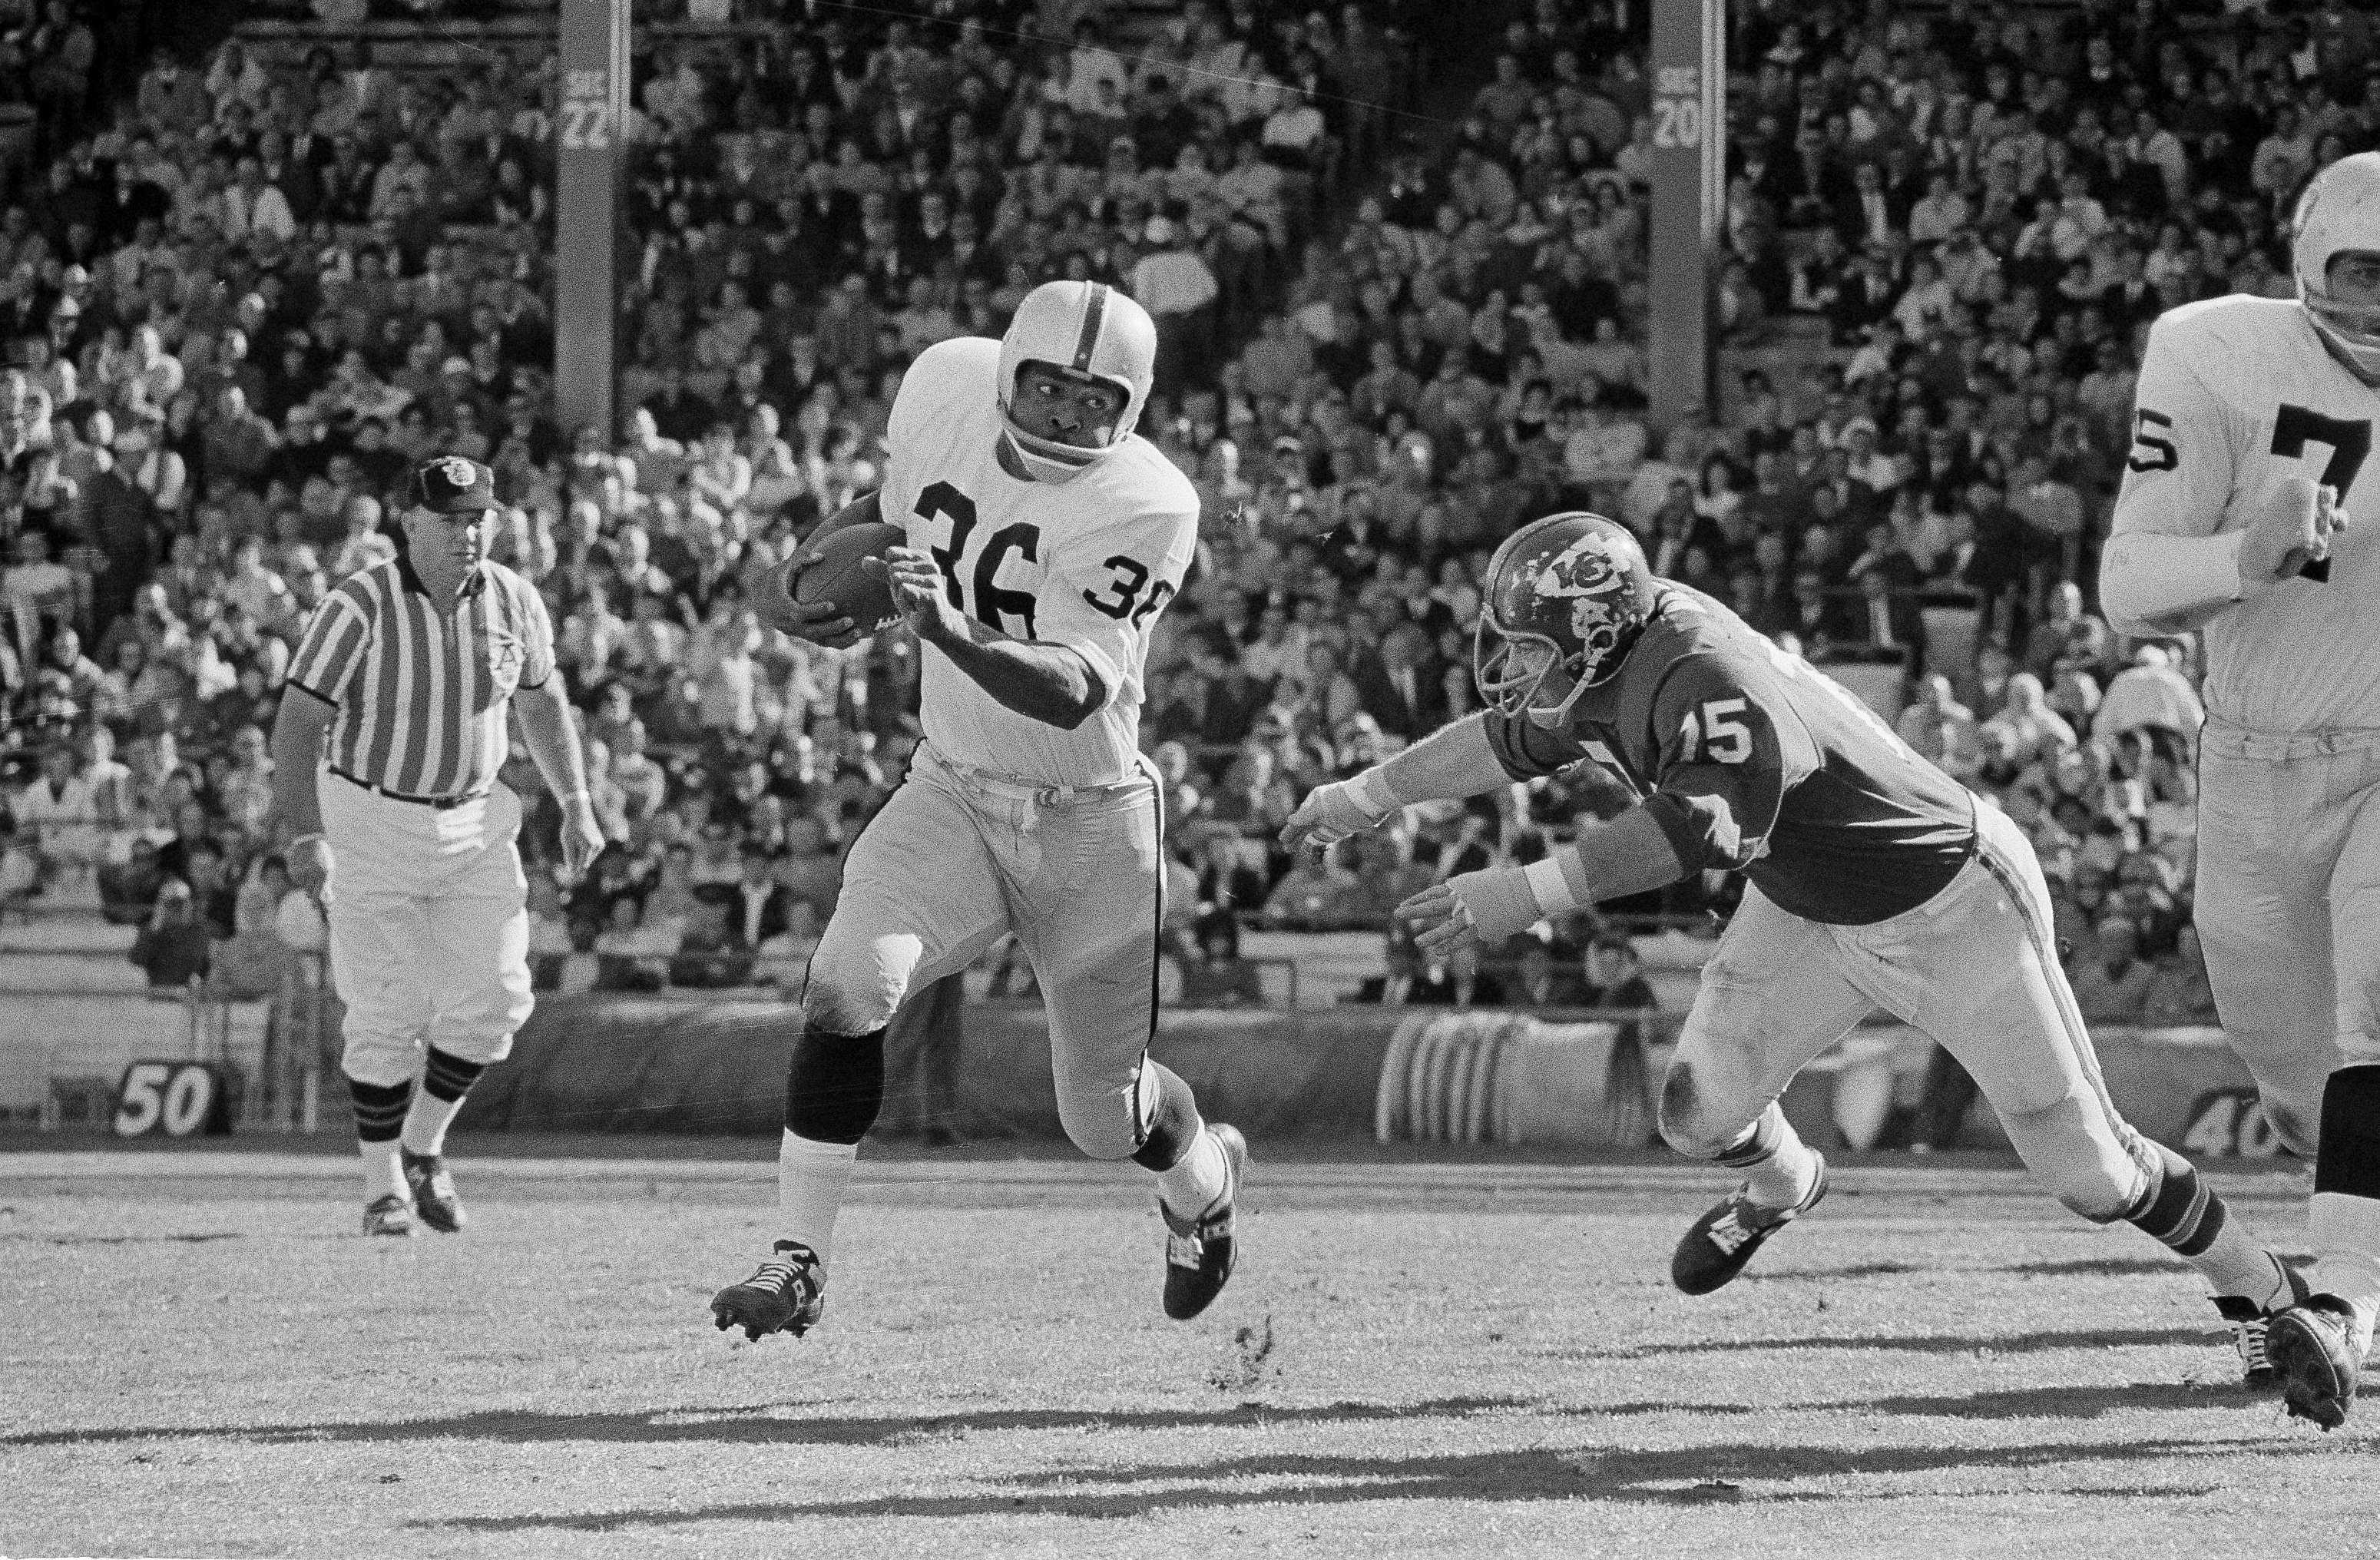 Clem Daniels (36) of the Oakland Raiders races around the right side of his line as Jerry Mays, right, of the Kansas City Chiefs moves in for the tackle, in Kansas City, Mo., Oct. 31, 1965. The Chiefs won 14-7.